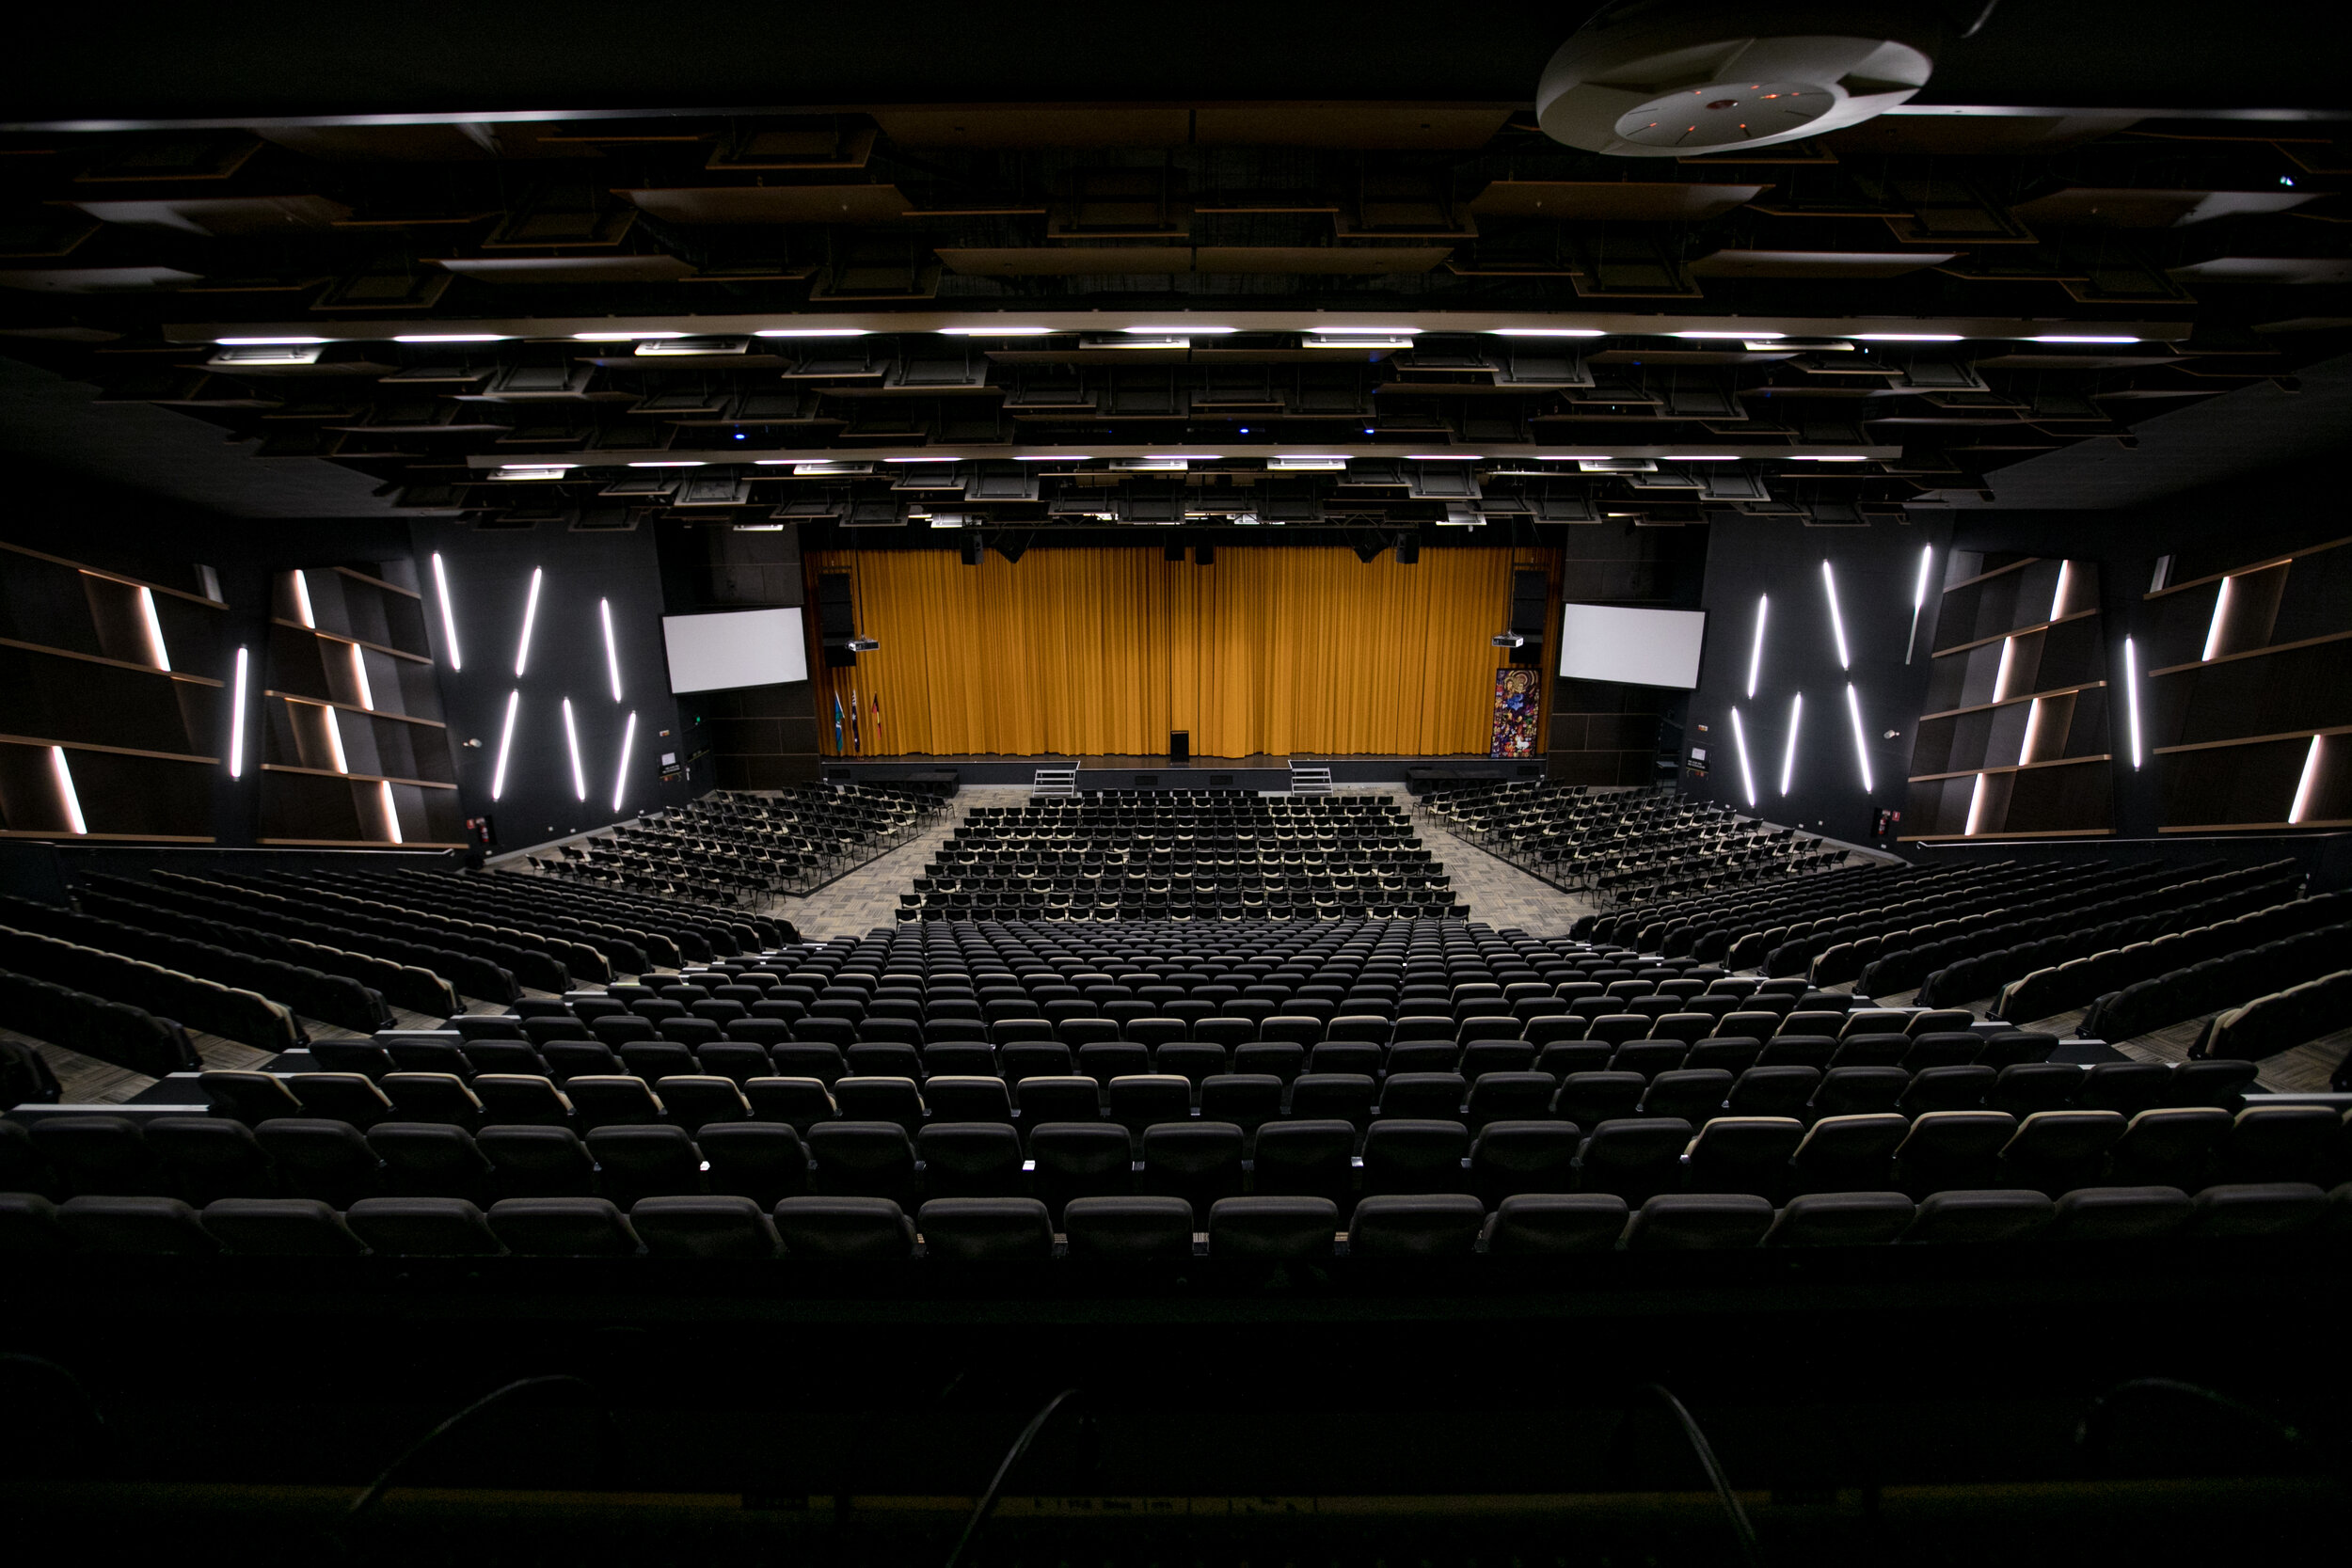 St Laurence's College - ERpac auditorium - design of project was to simplify a complex auditorium system to allow a teacher to press one button on a touch panel to operate the whole system and wirelessly connect laptop to system and projectors - see next photo